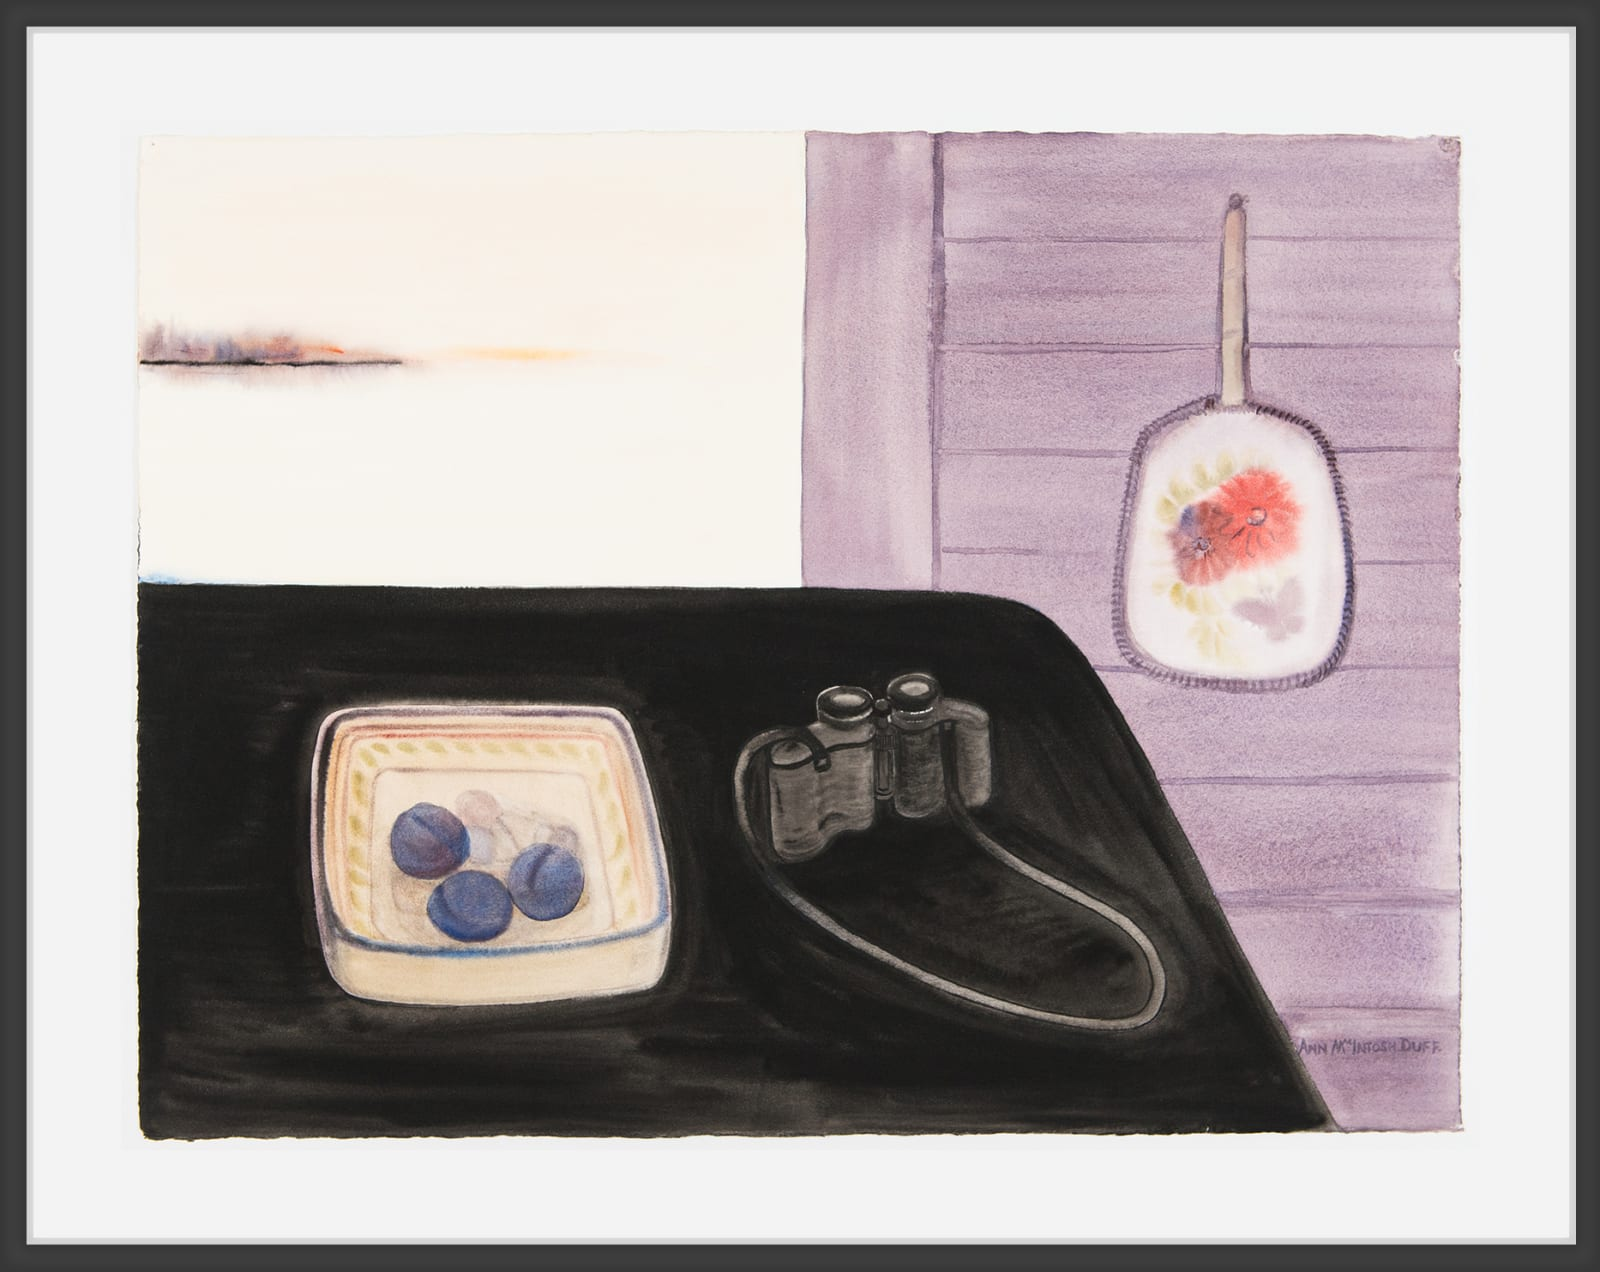 Ann MacIntosh Duff, View (with Plums), c. 1993